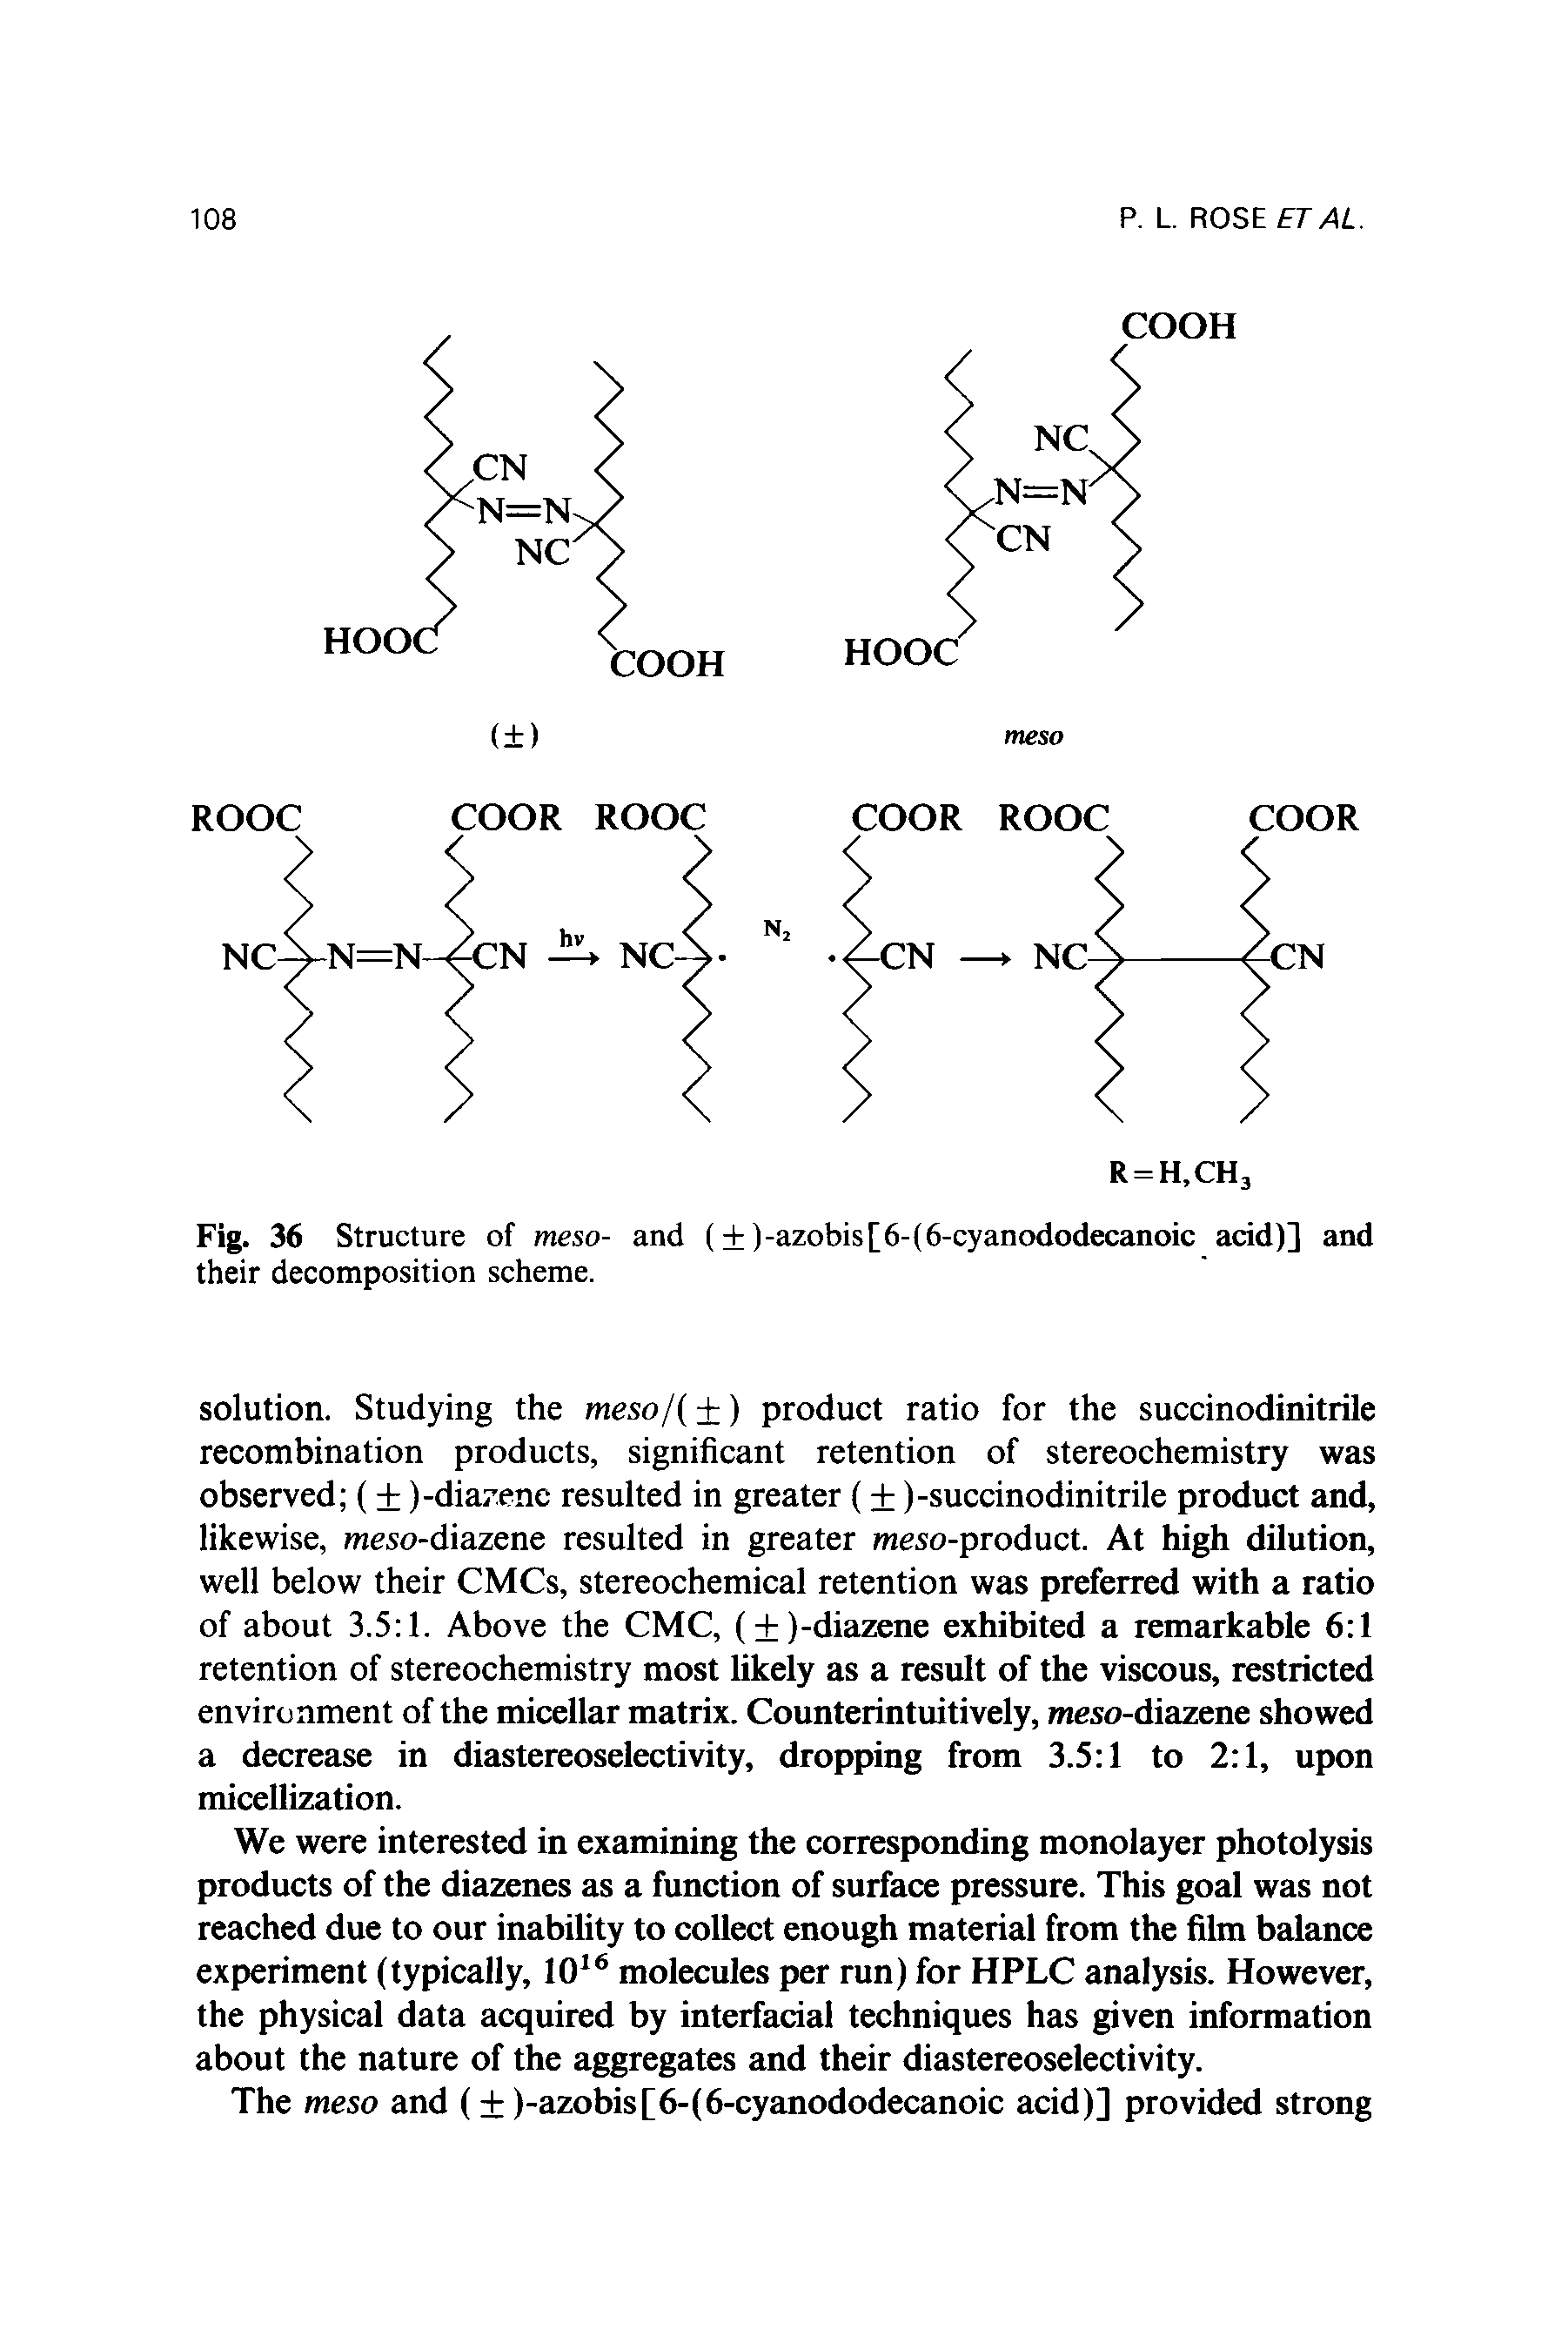 Fig. 36 Structure of meso- and (+ )-azobis[6-(6-cyanododecanoic acid)] and their decomposition scheme.